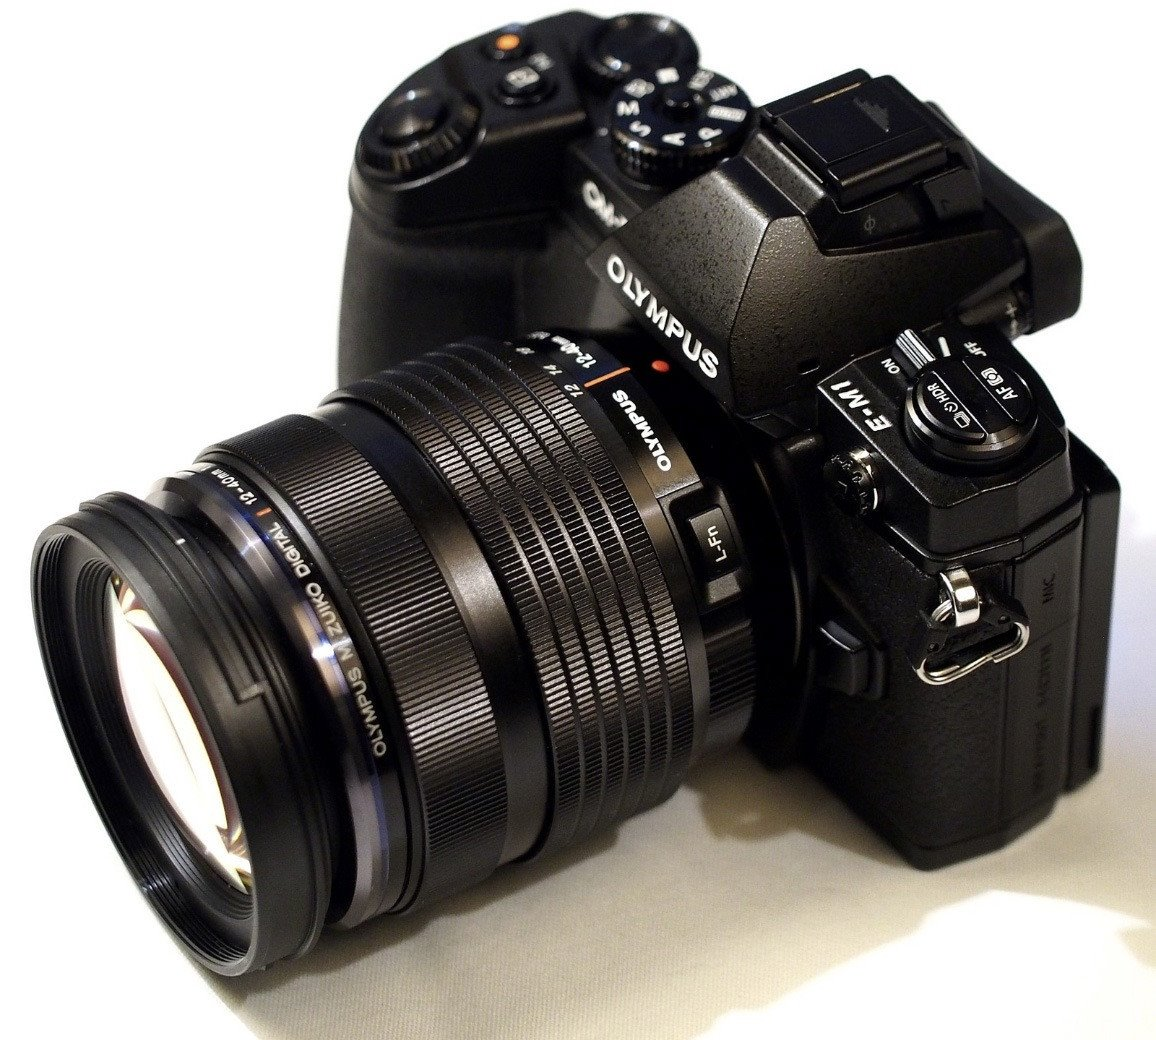 A perfect combo: Olympus OM-D EM-1 camera with the 12-40mm f/2.8 Pro lens on it.